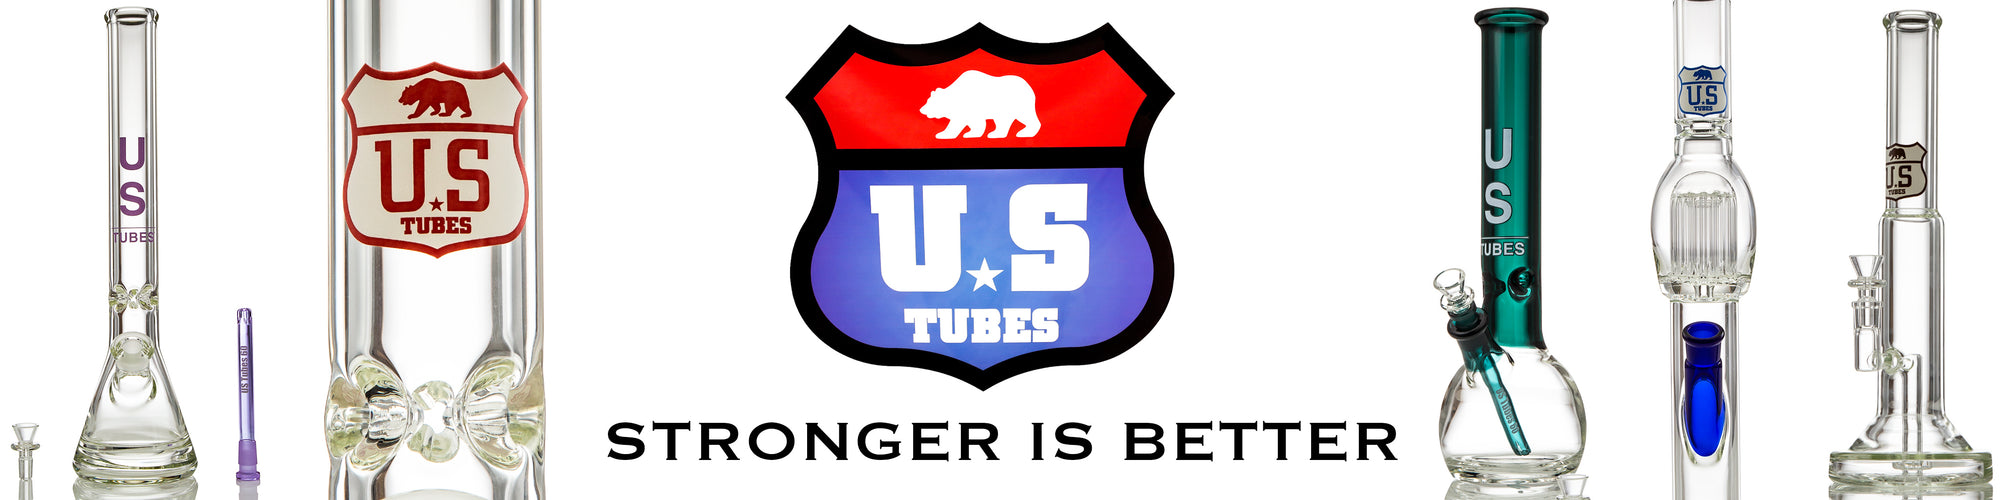 US TUBES Product Banner, Stronger is Better